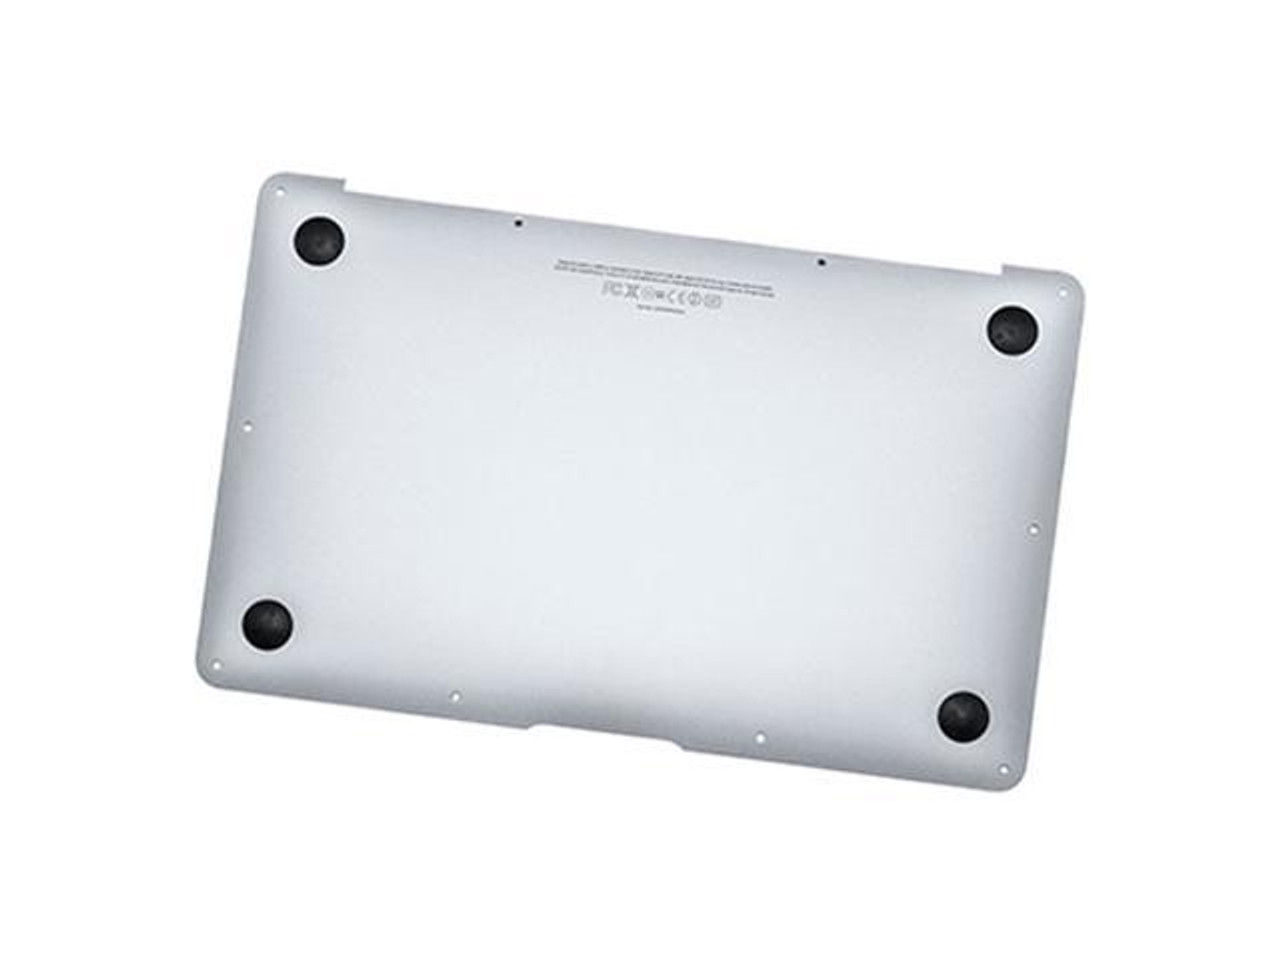 new product 0d966 9fc83 Apple MacBook Air (Mid 2013 / Early 2014) Bottom Case 923-0443 - Good